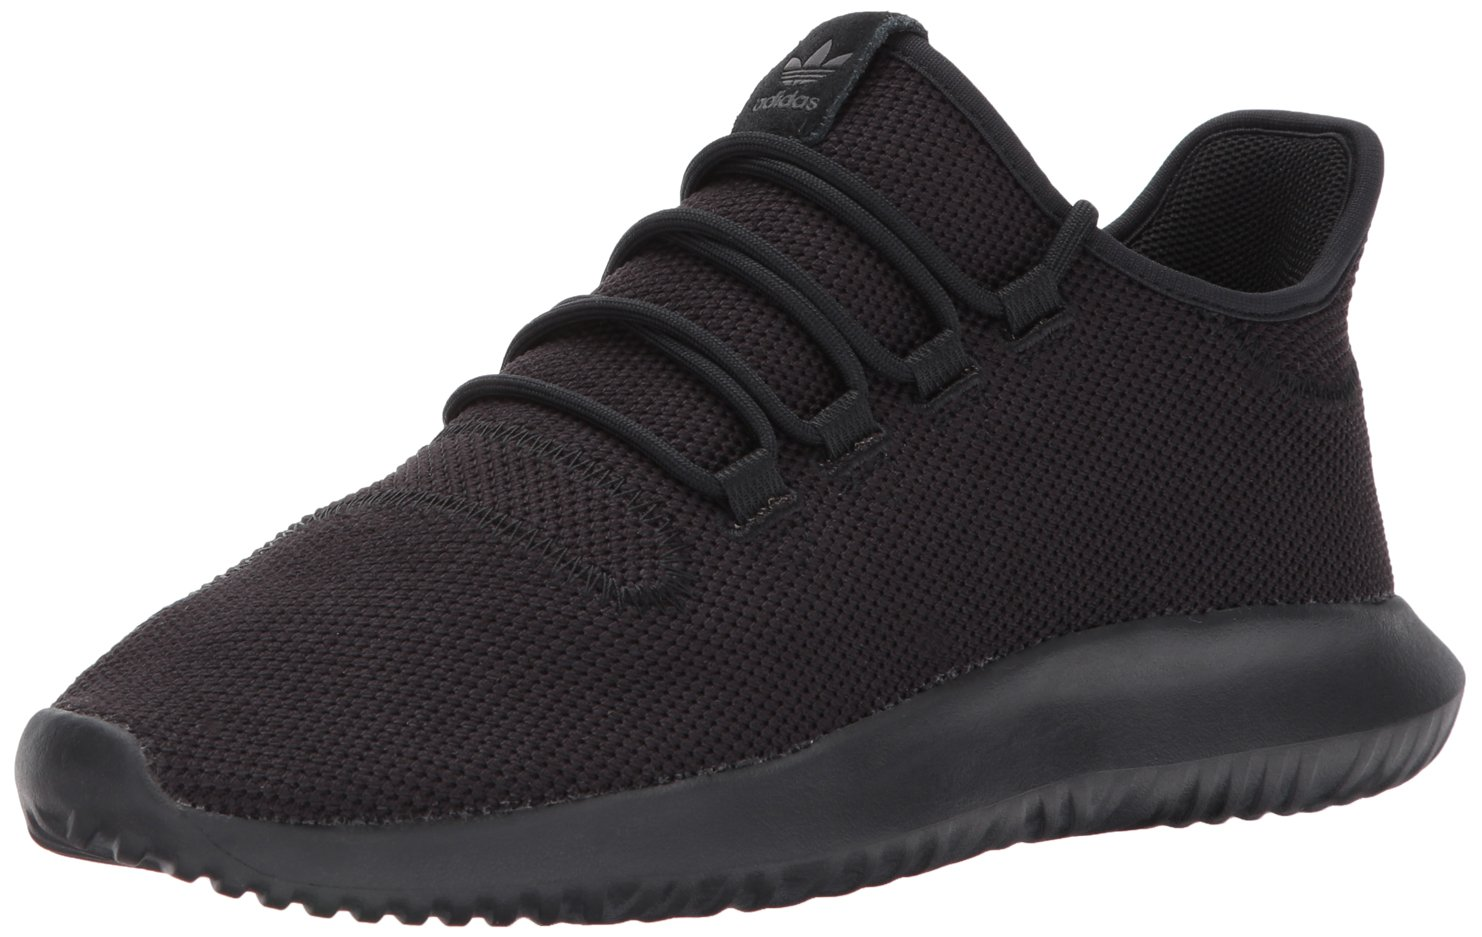 adidas Originals Men's Tubular Shadow Sneaker B01N5F6WEN 8 D(M) US|Black/White/Black